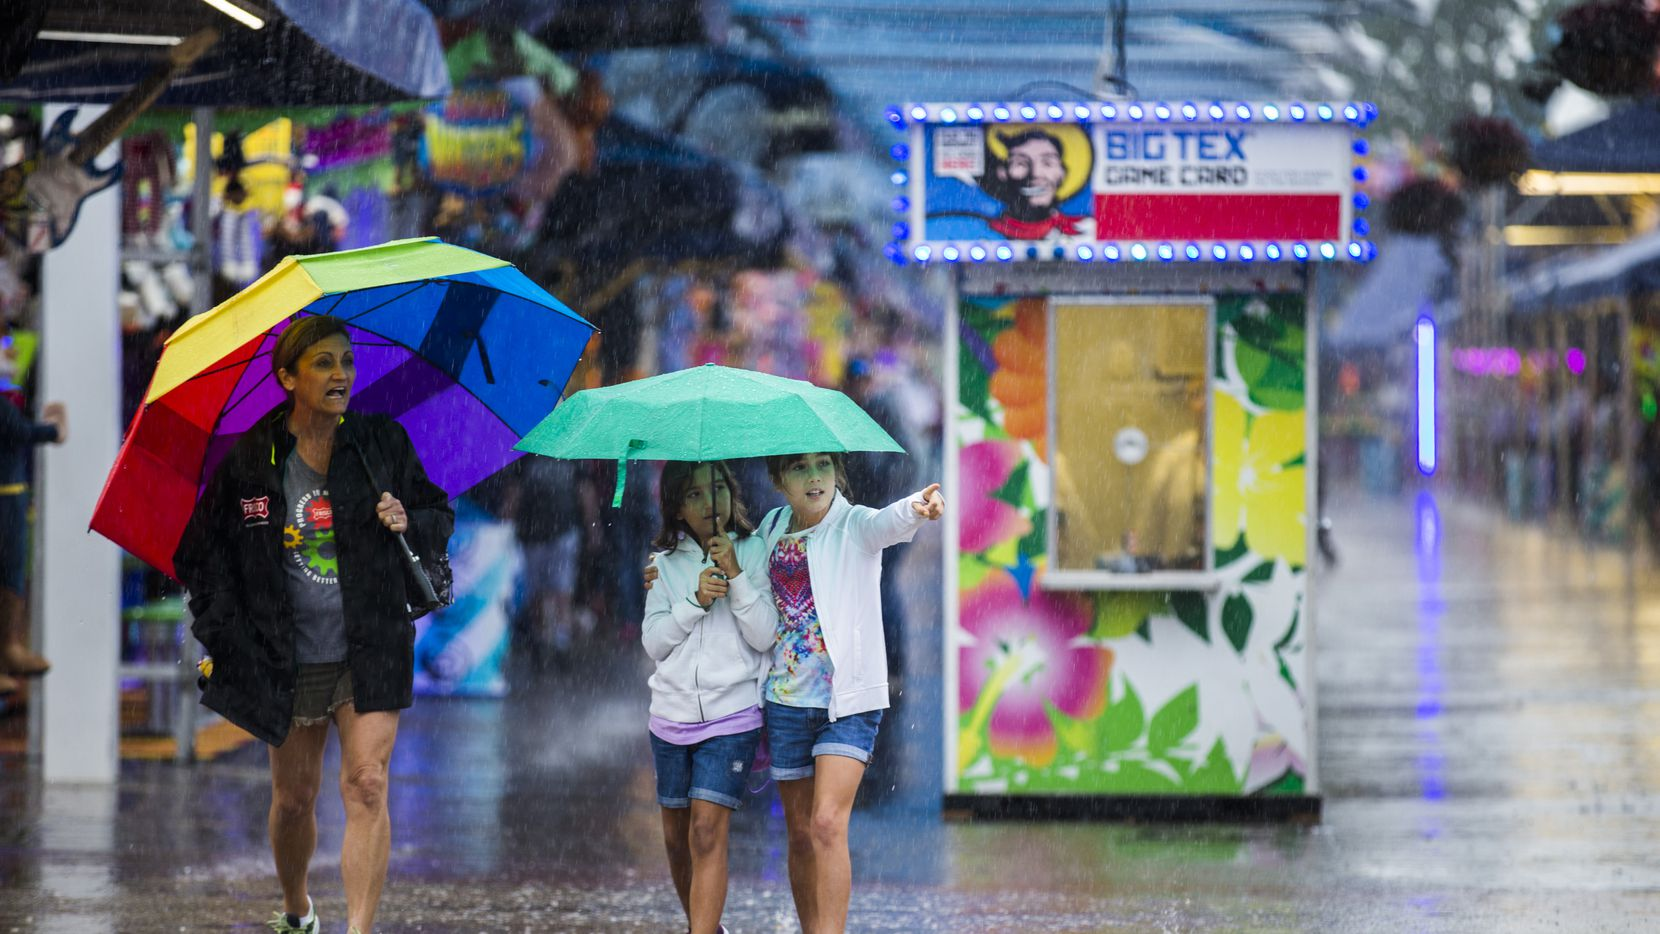 Julie Fernandez, Catalina Fernandez, 10, and Kariss Fernandez, 10, walked through the midway in the rain at the State Fair of Texas on Tuesday.